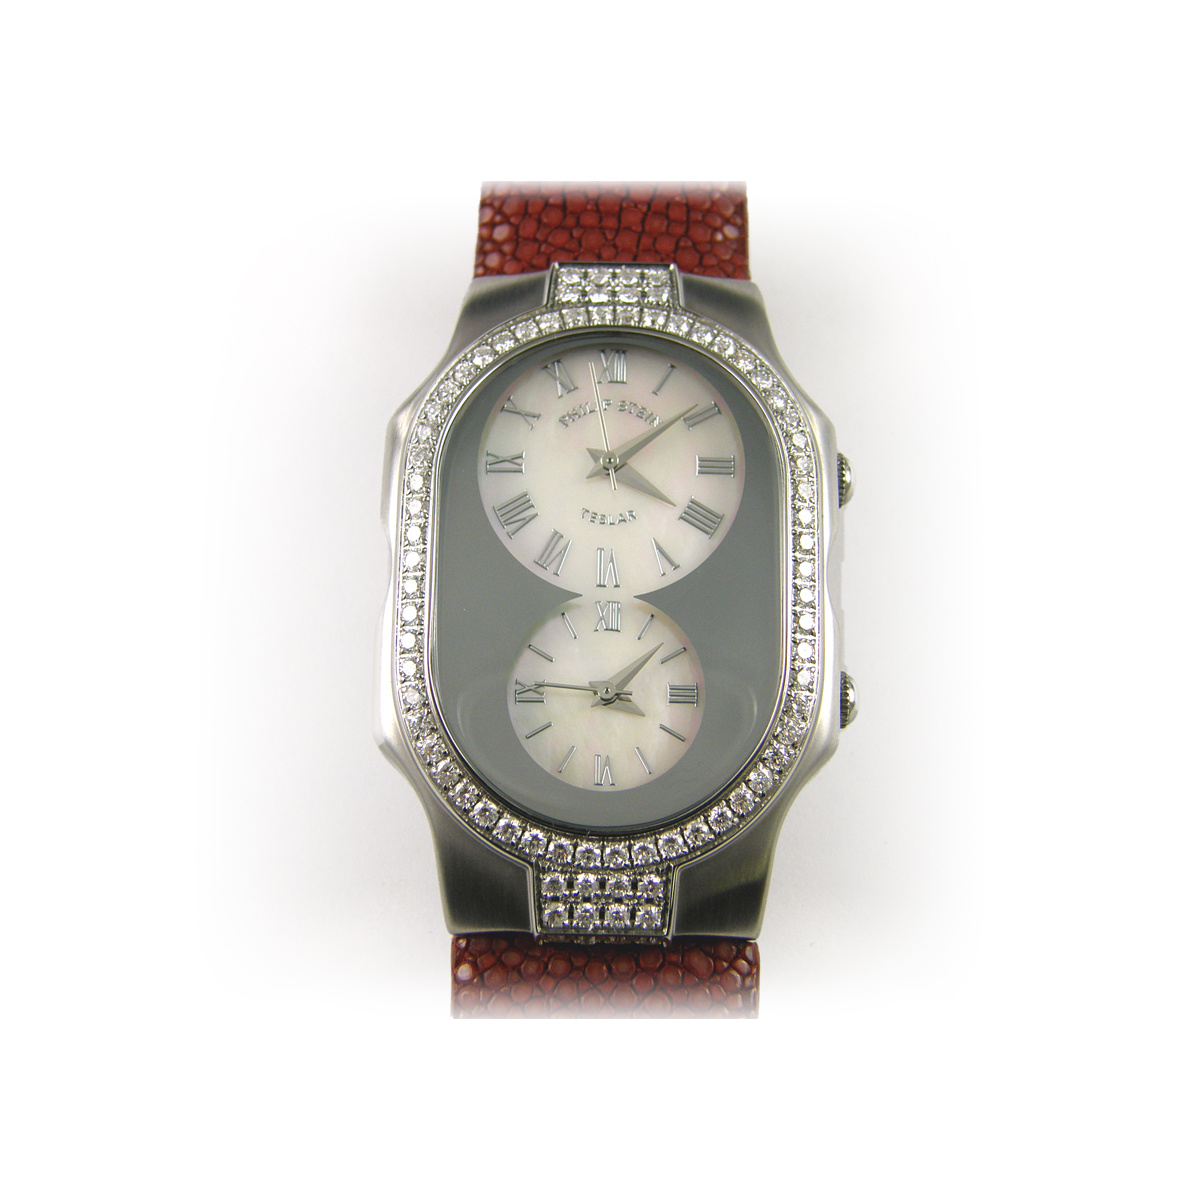 Vintage Philip Stein White Mother of Pearl Roman Dial watch with a Diamond Case with Two Straps